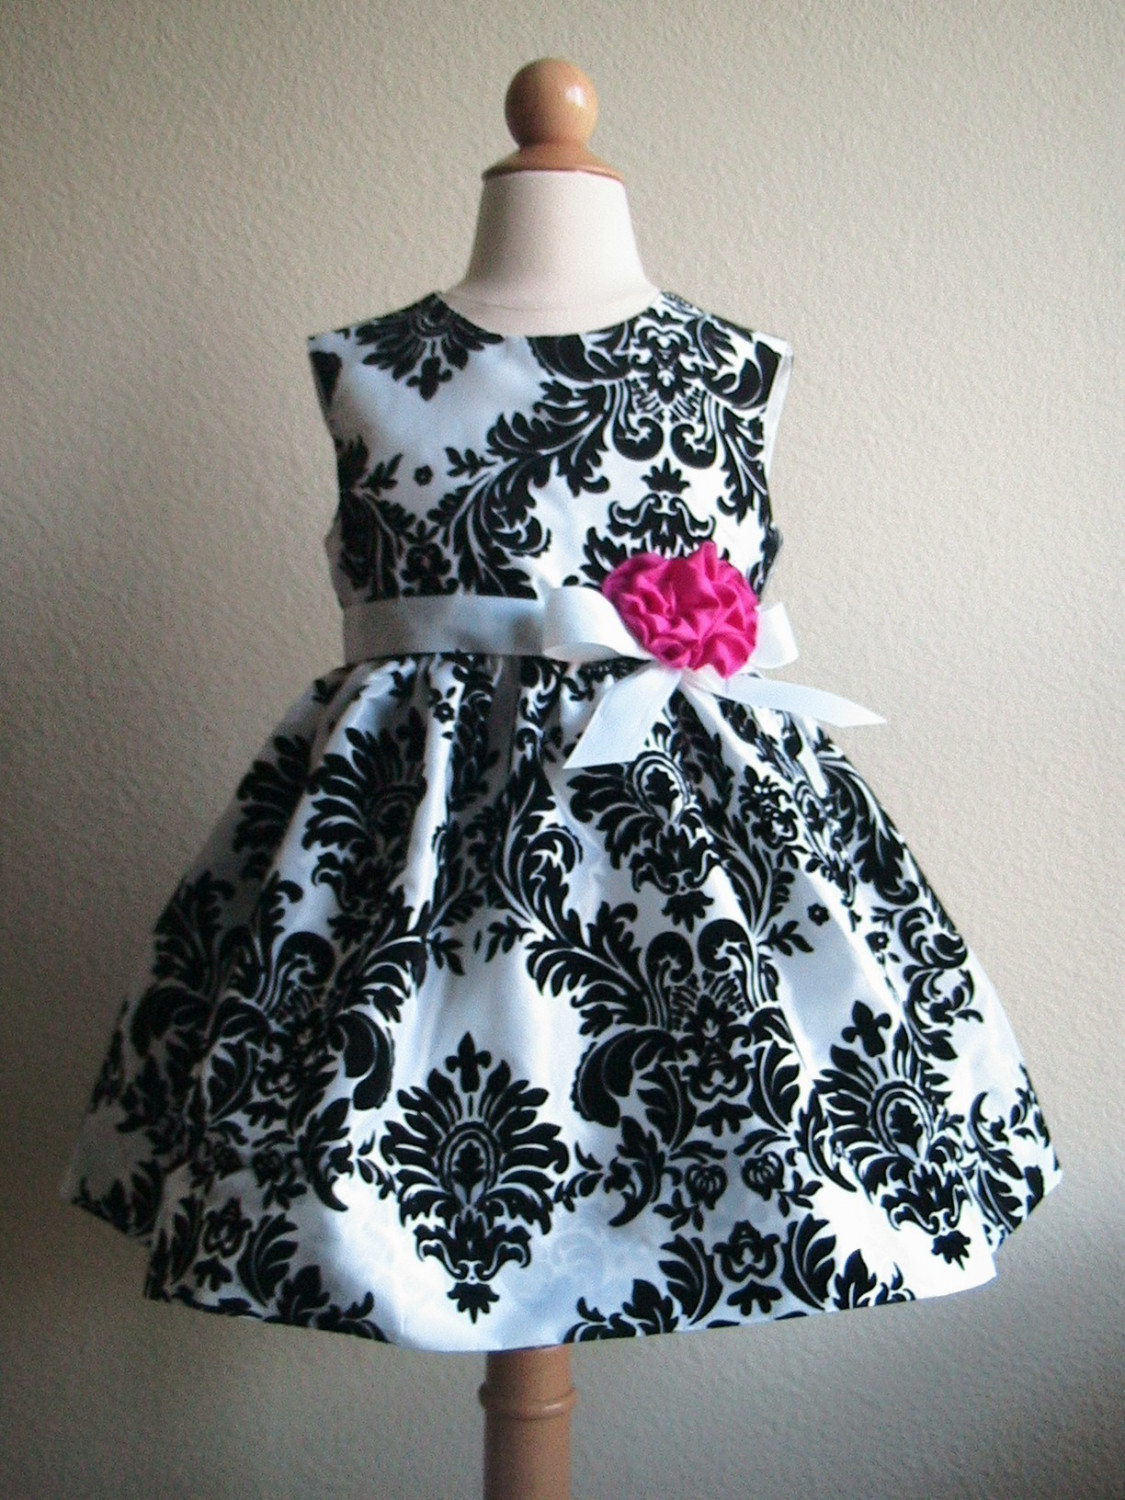 Black and white dresses for wedding guests    Mystique  Collections  Bonny Bridal  Dream Wedding Red